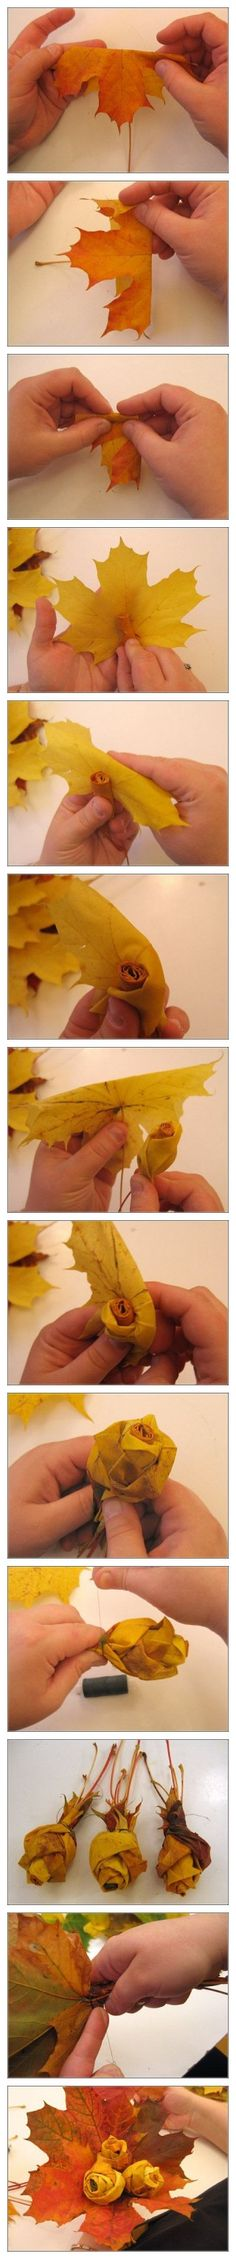 flowers out of maple leaves!